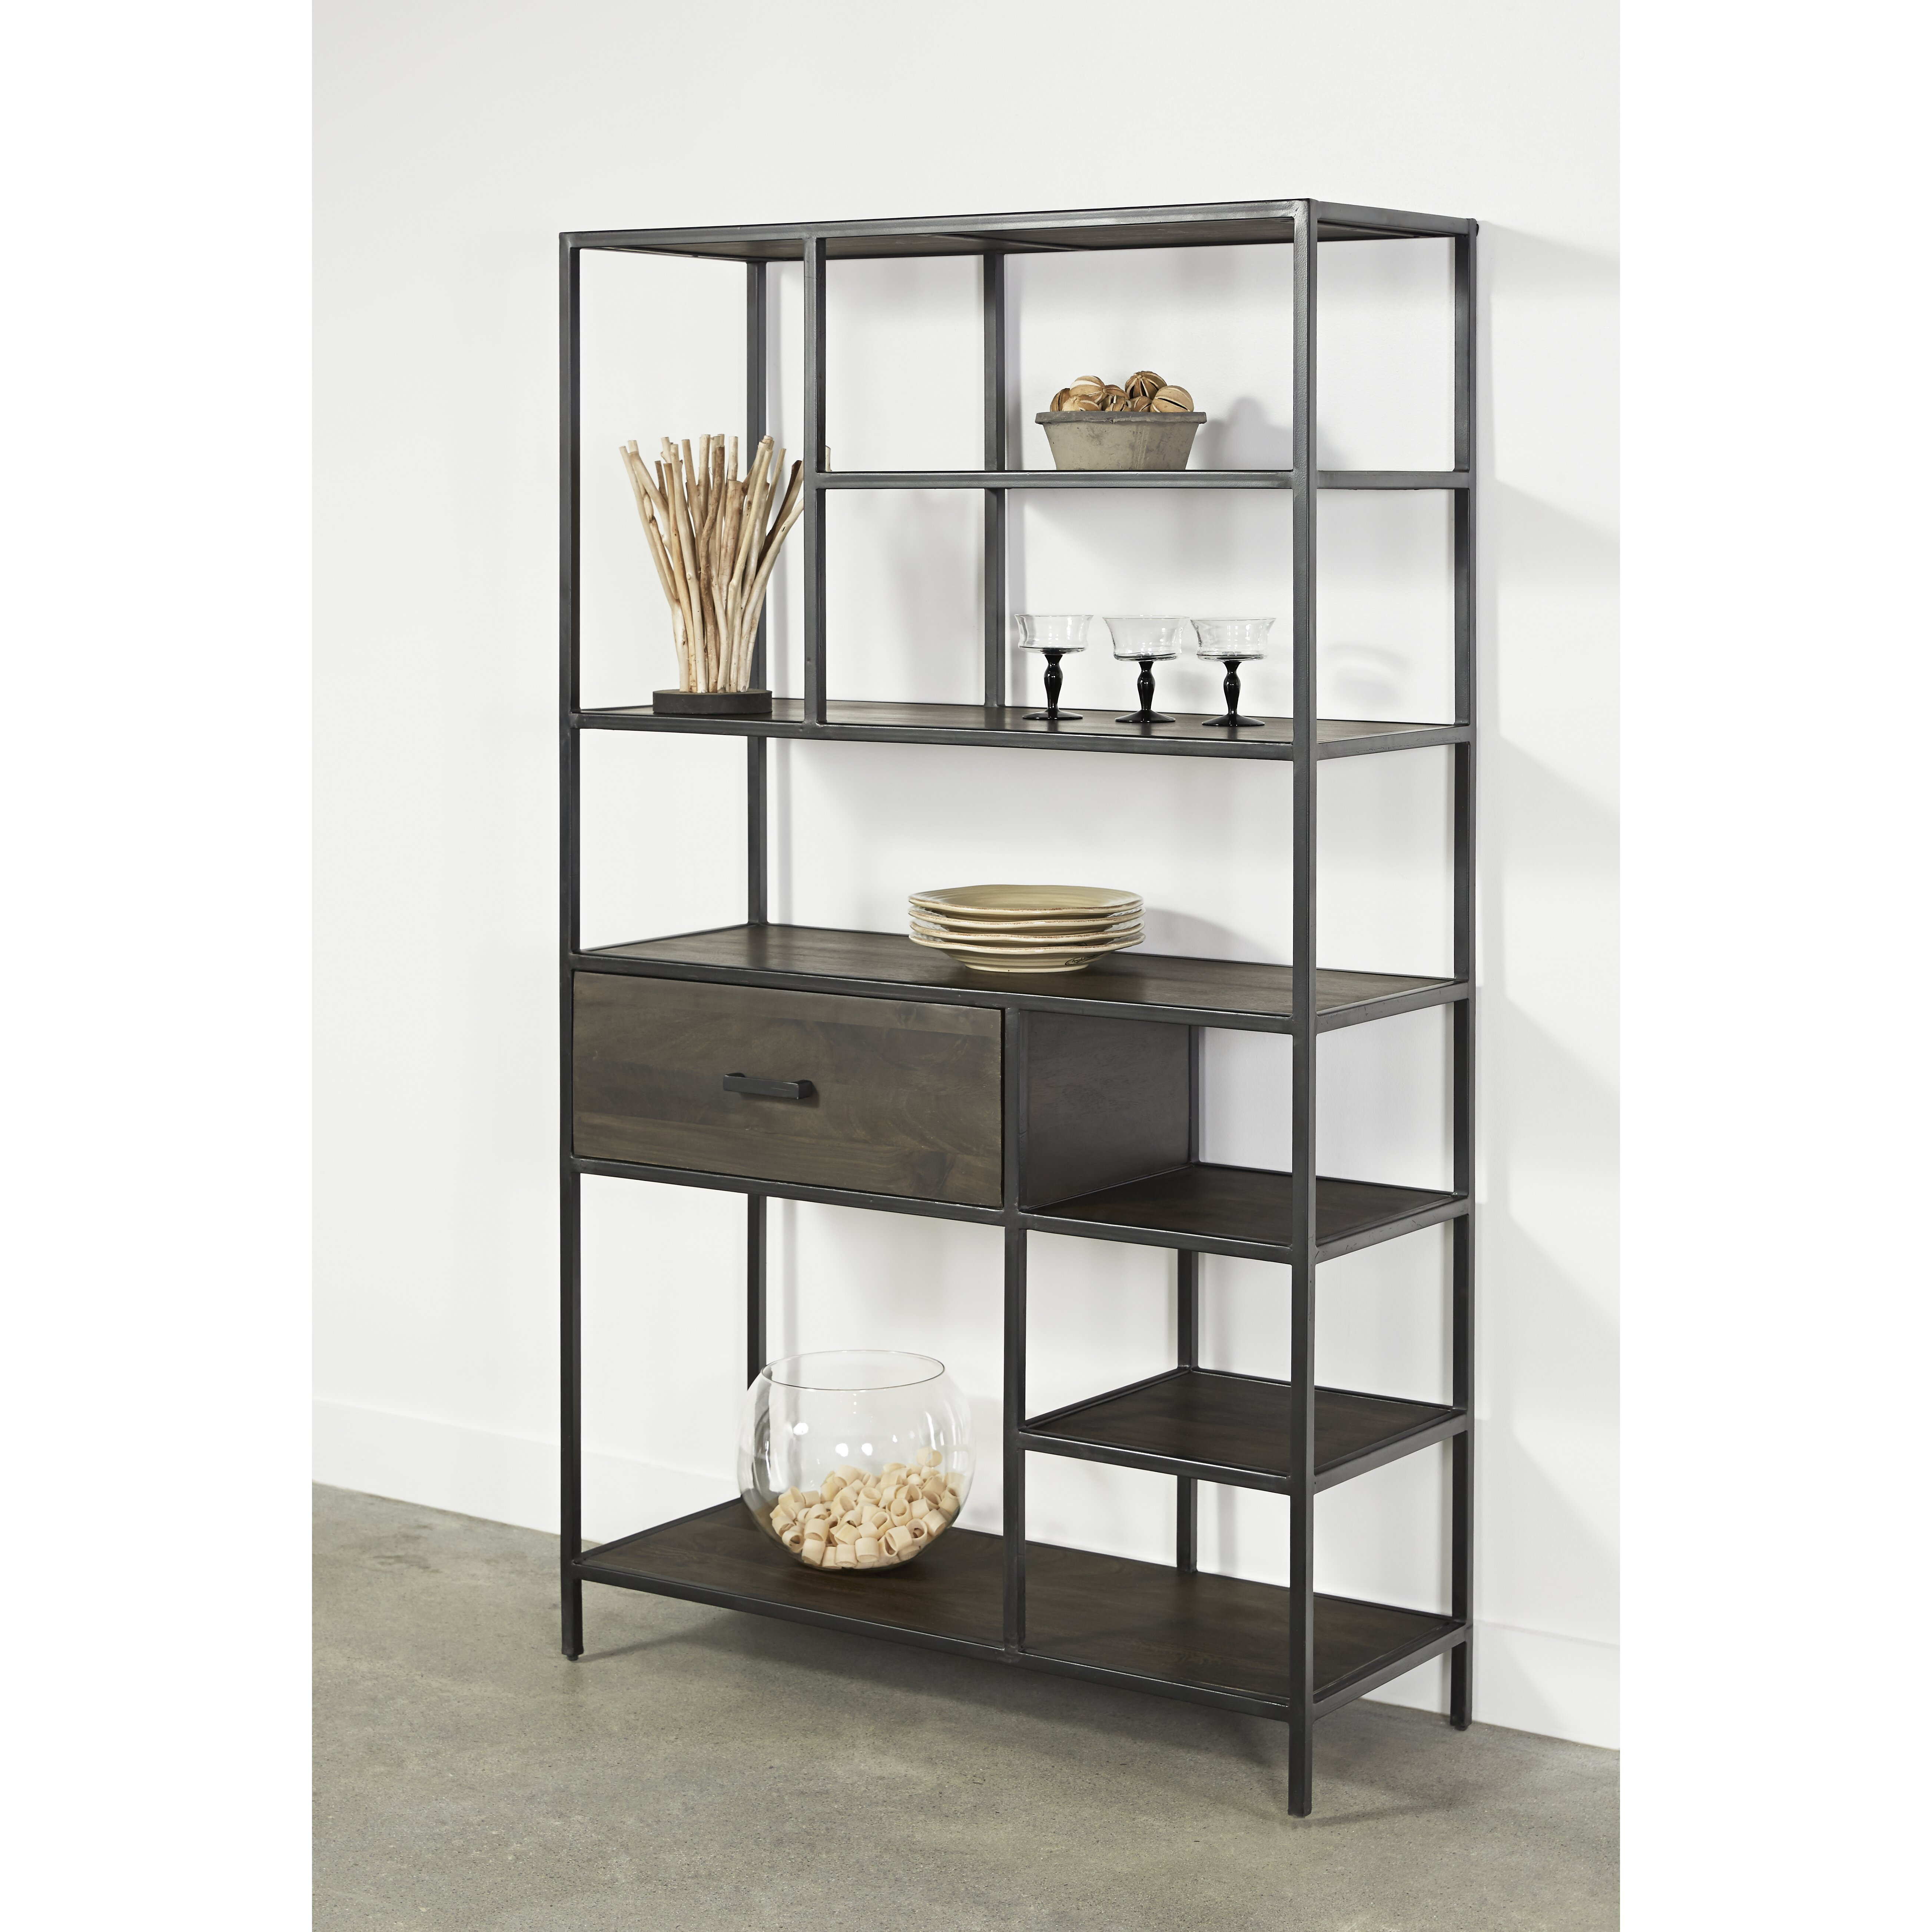 trent austin design 70 etagere bookcase wayfair. Black Bedroom Furniture Sets. Home Design Ideas